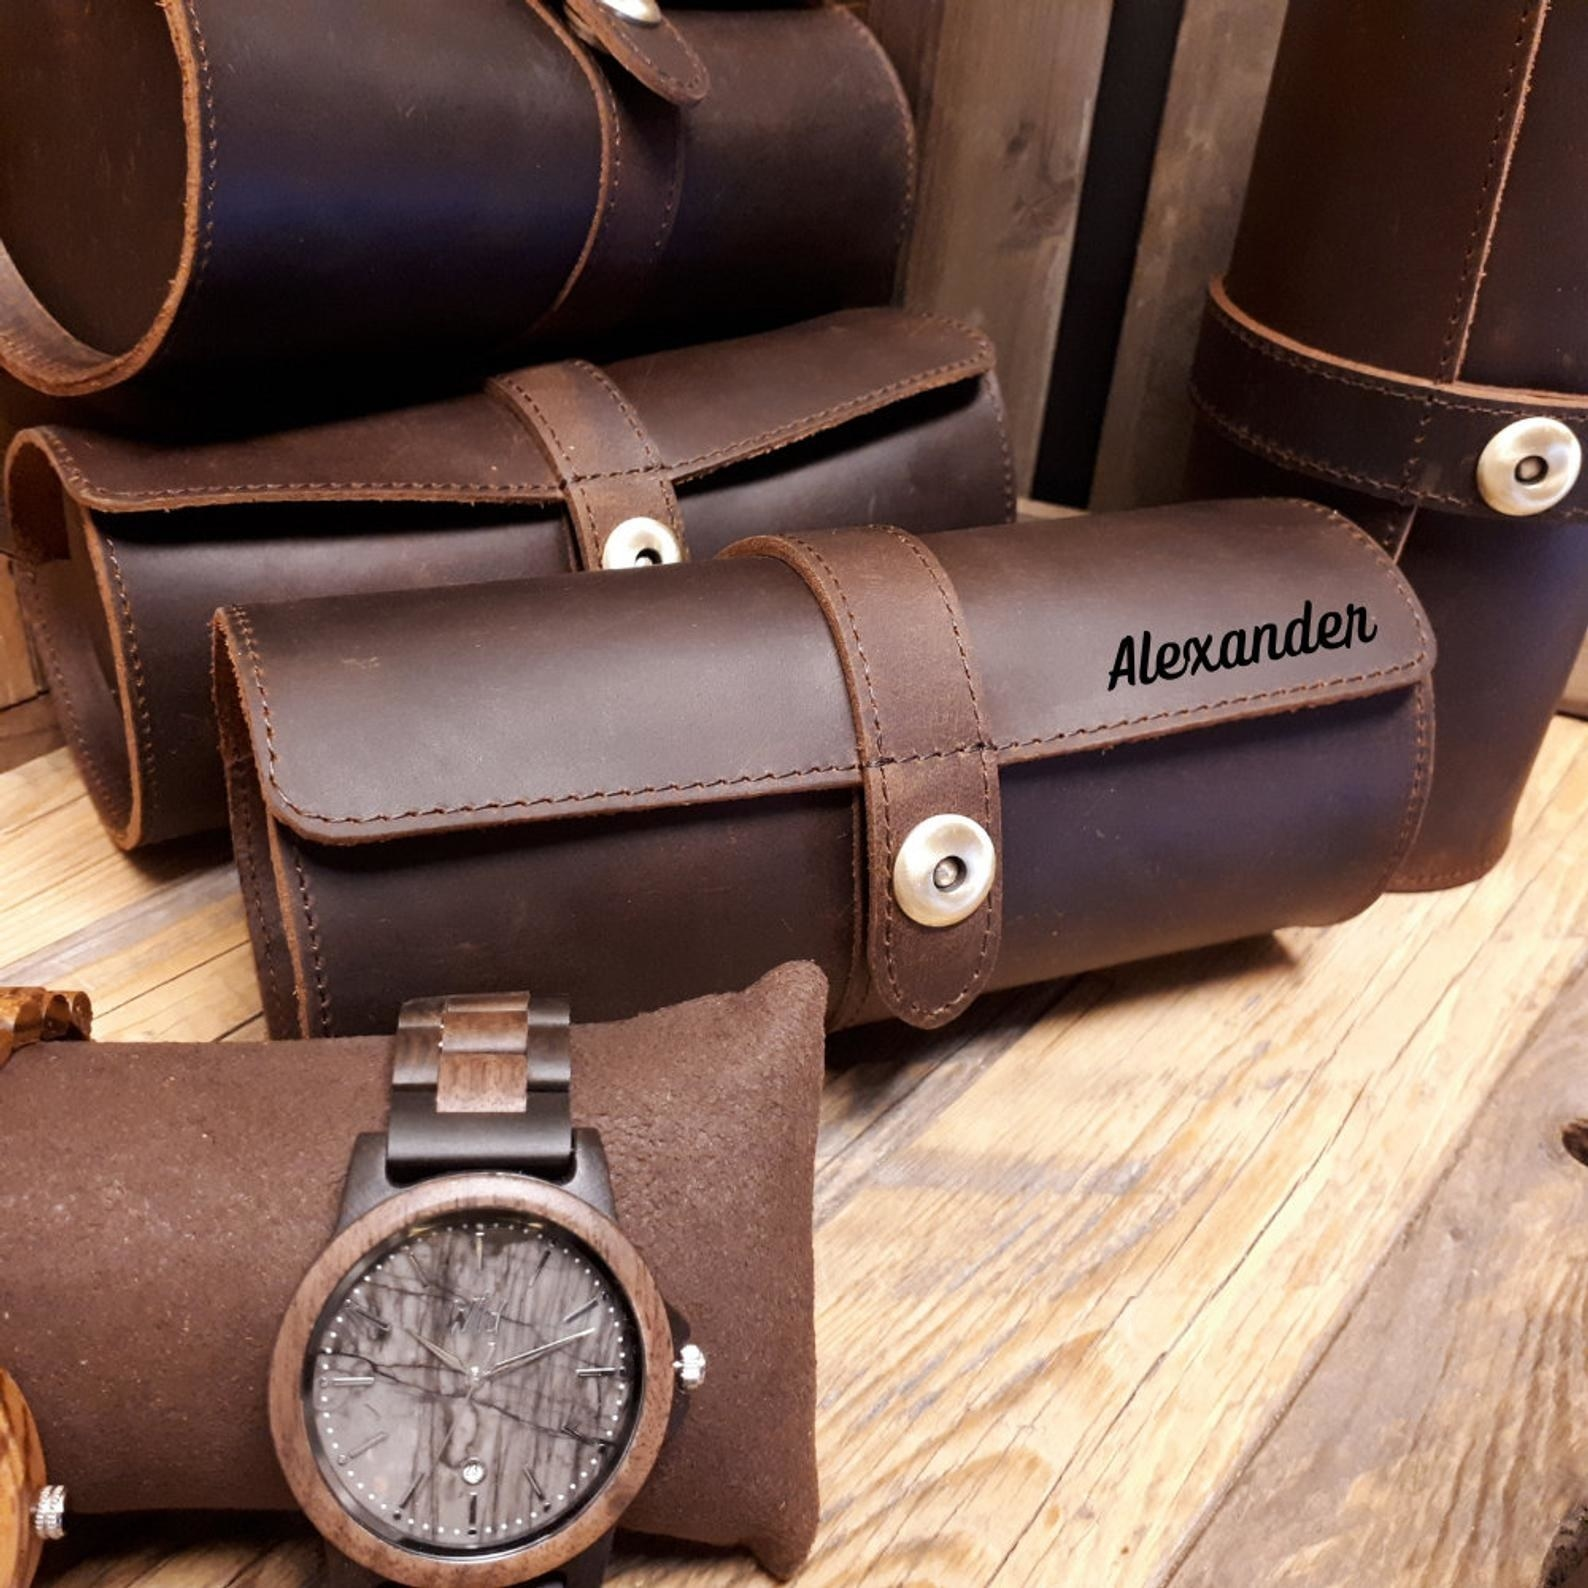 A brown leather watch roll case with a snap closure